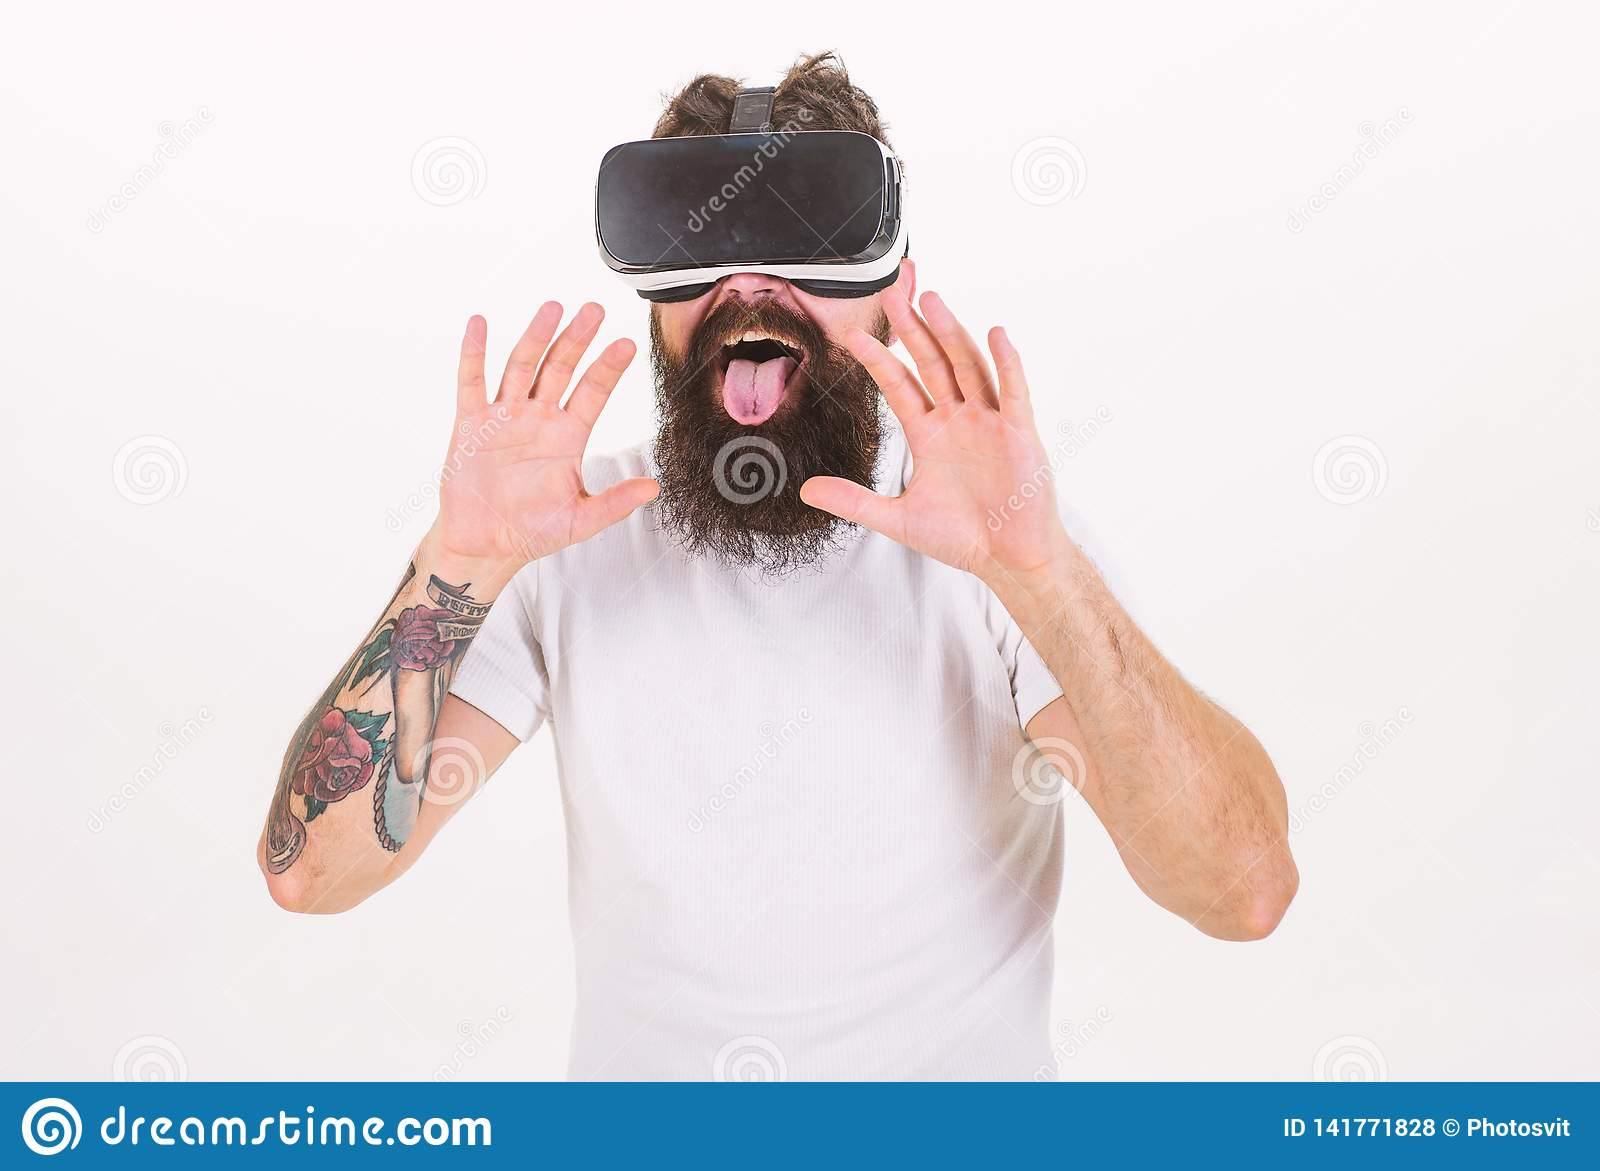 Man with beard in VR glasses, white background. Virtual sex concept. Guy with head mounted display having sex in virtual